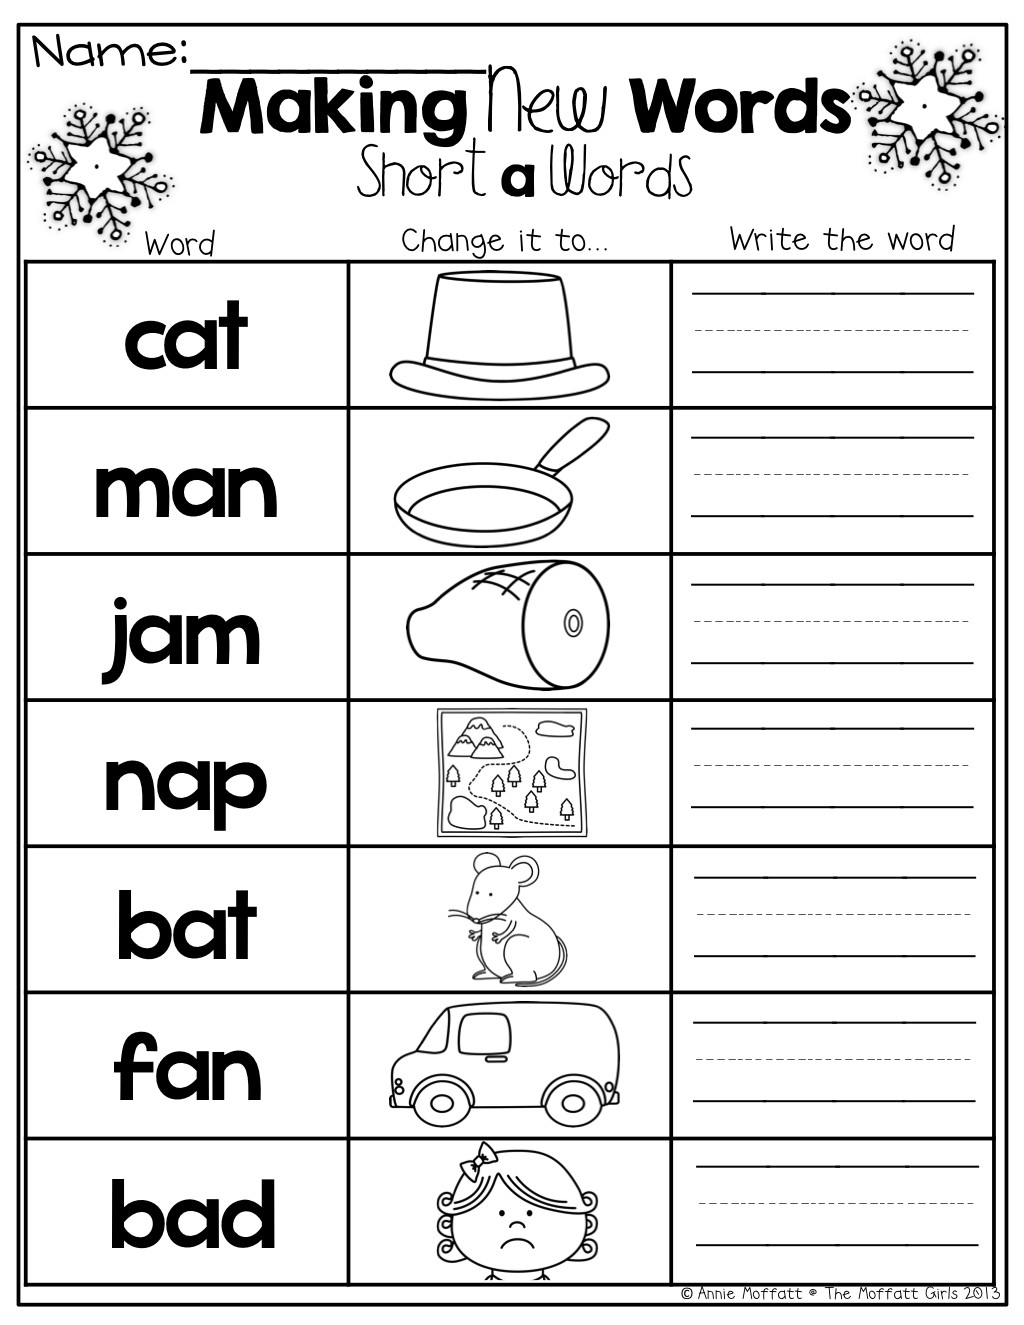 Inflectional Endings Worksheets 2nd Grade Ed Ing Ending Worksheets